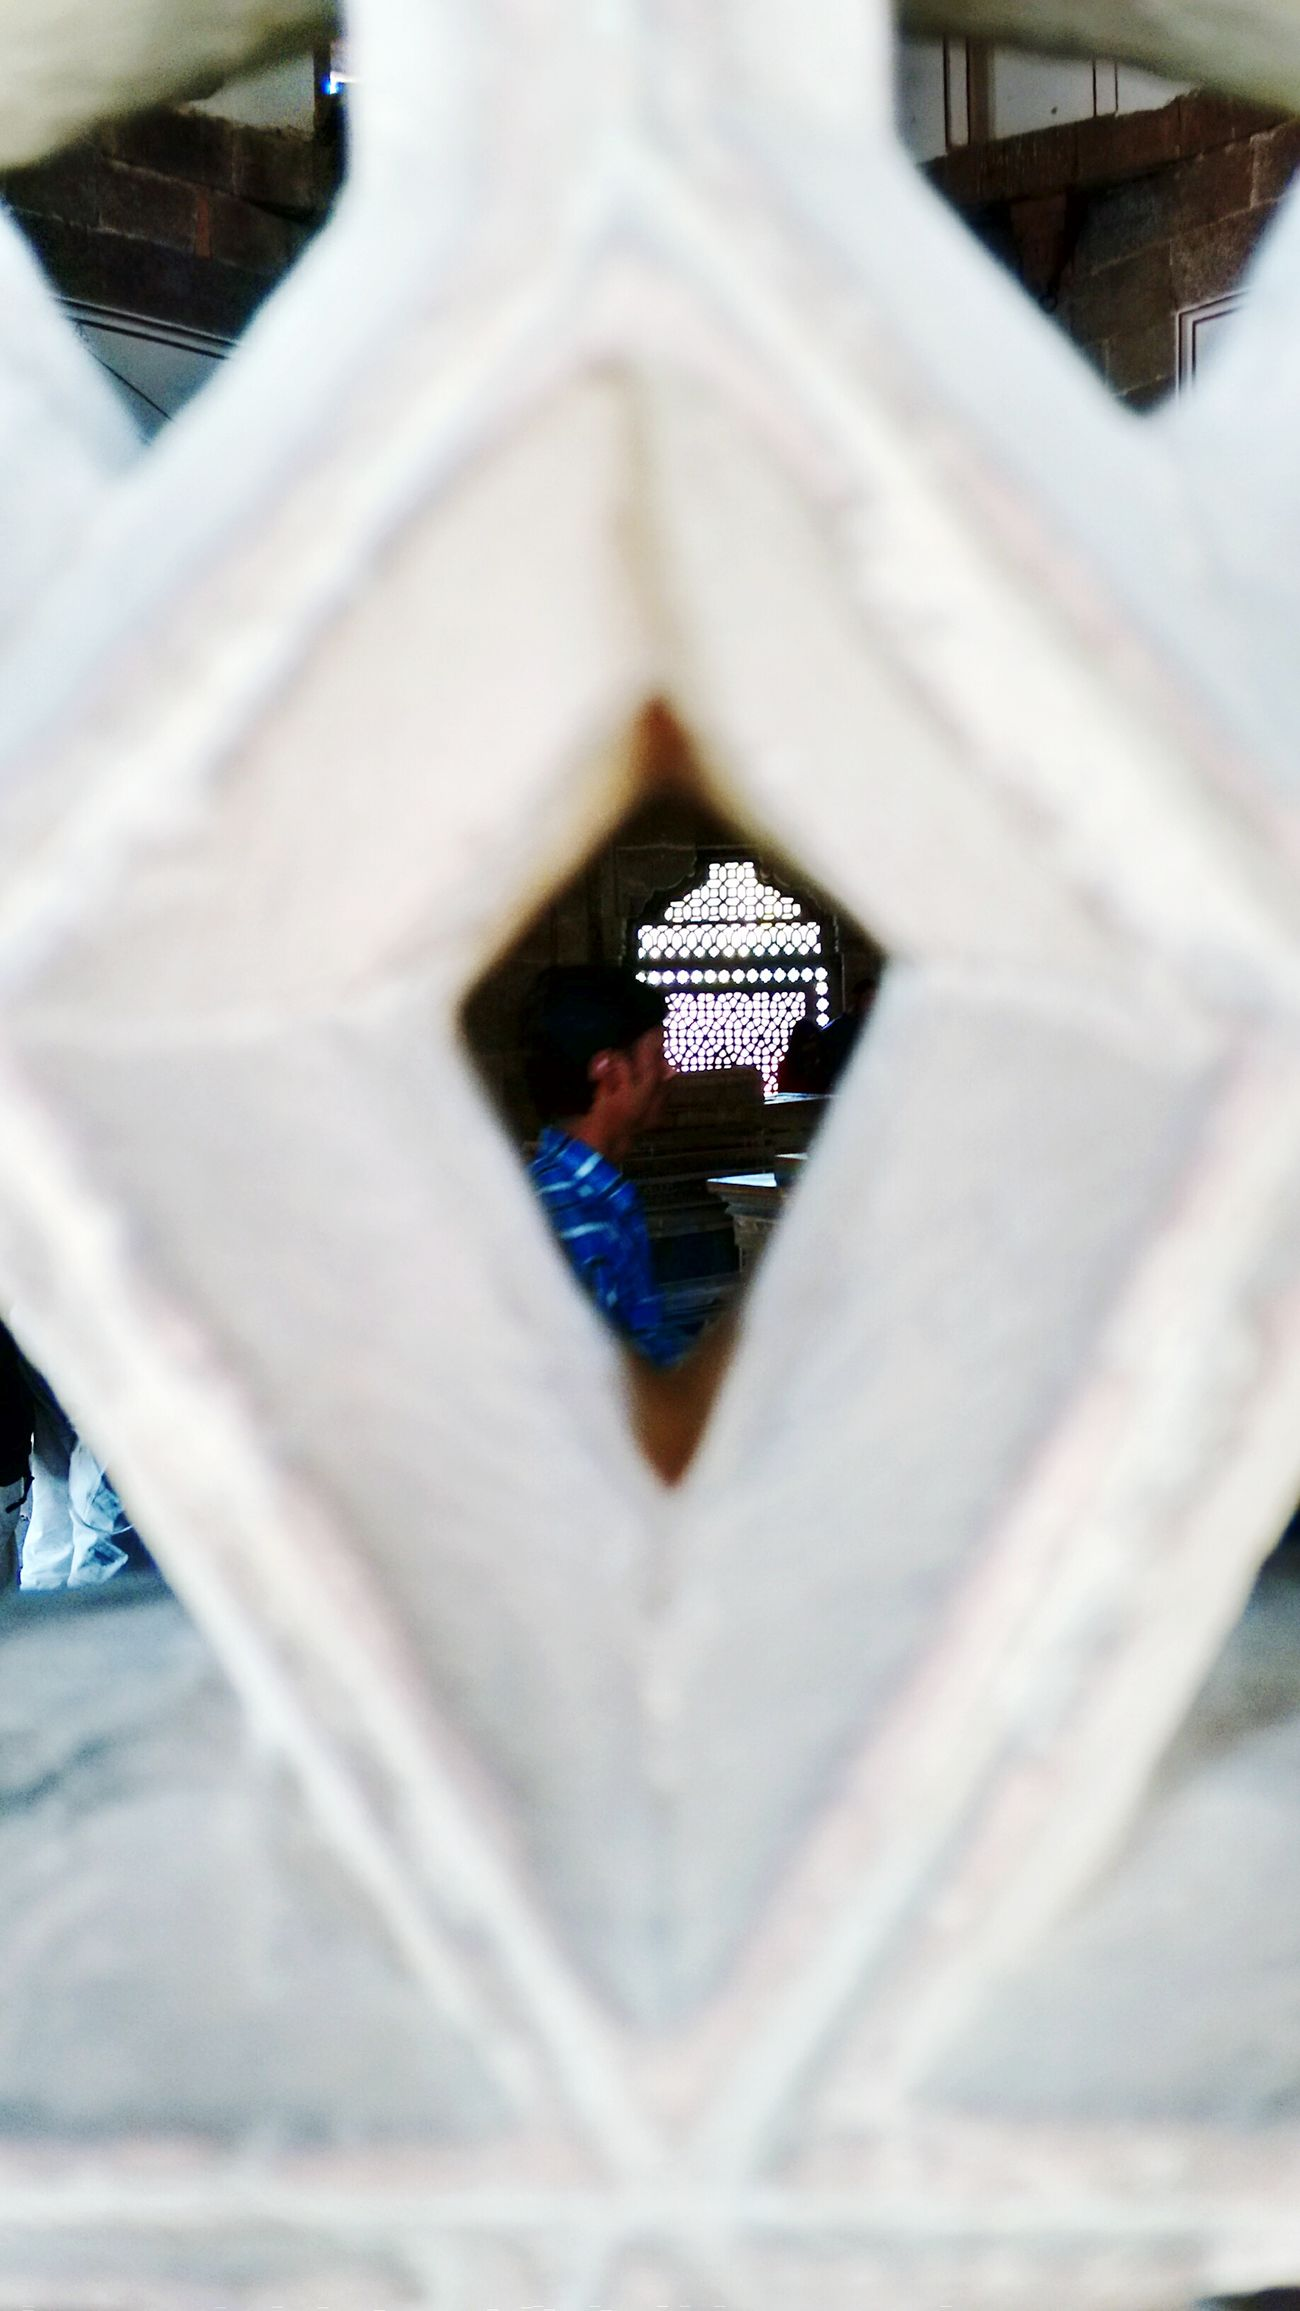 My Best Photo 2015 Humayun's Tomb A Peek On The Other Side Of The World